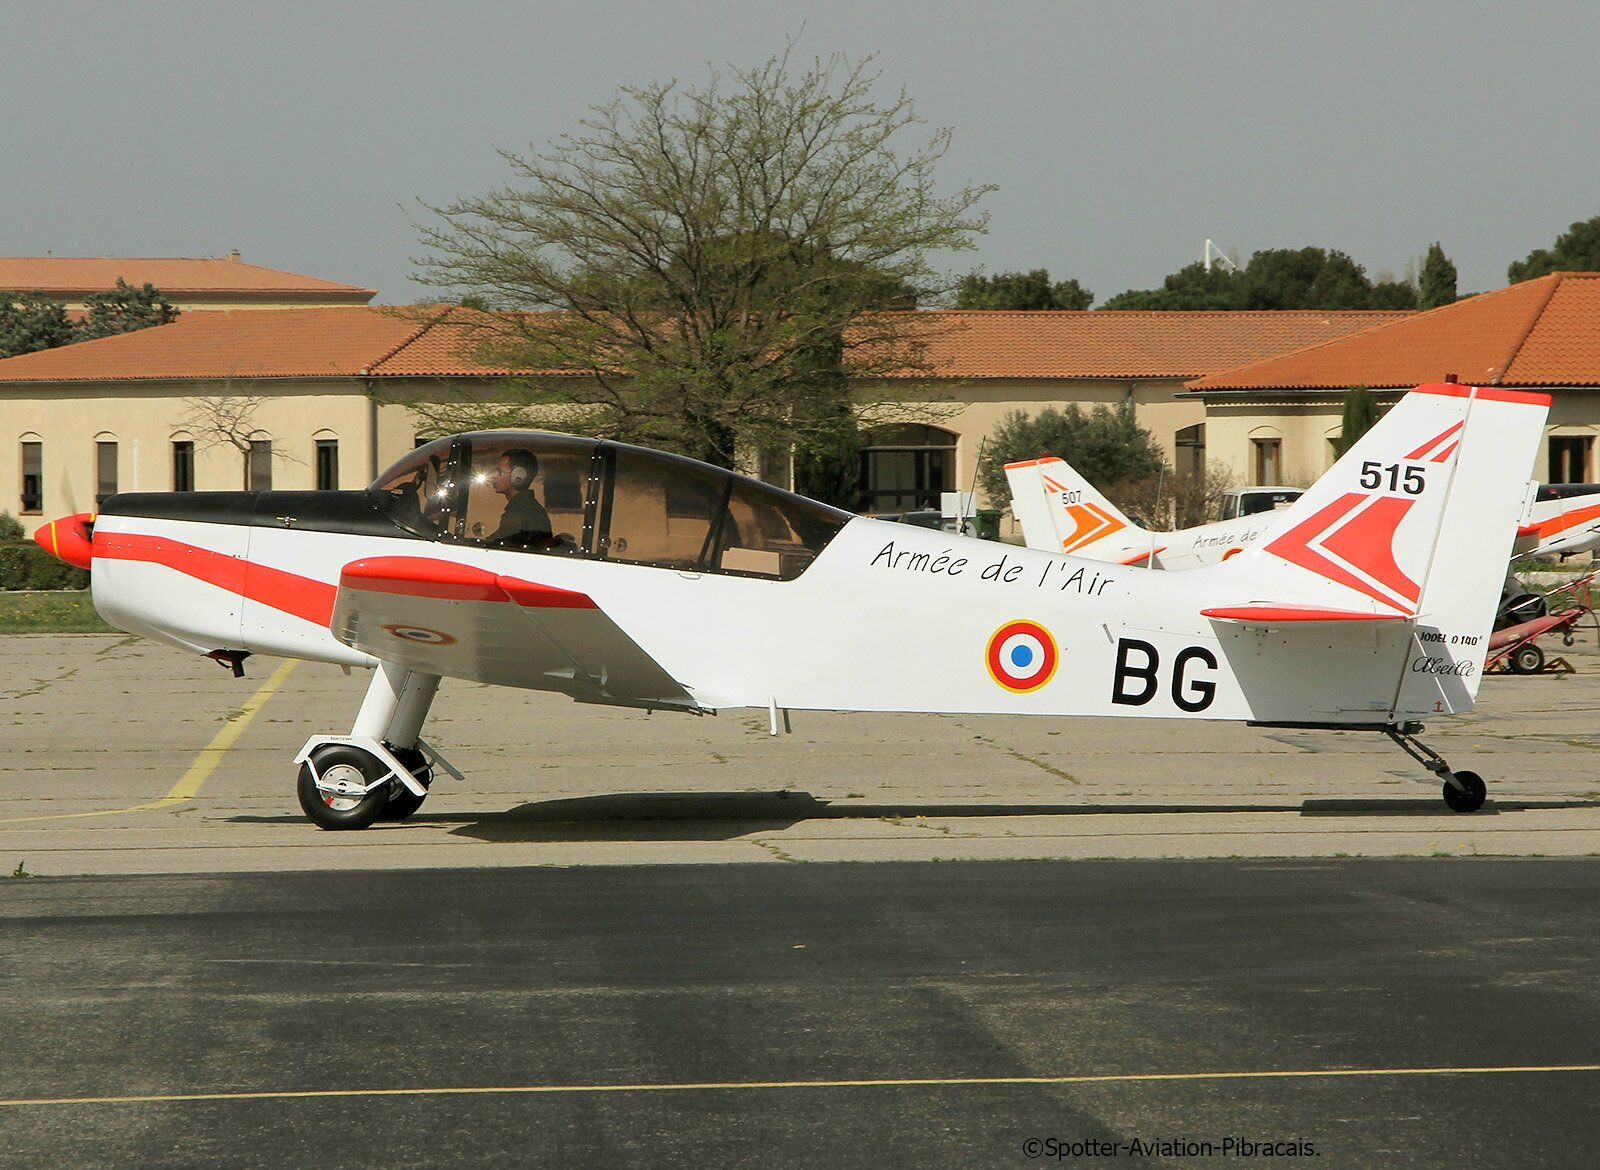 Salon de provence g n ral pineau air base ba 701 lfmy french air force jodel d 140 abeille - Base 701 salon de provence ...